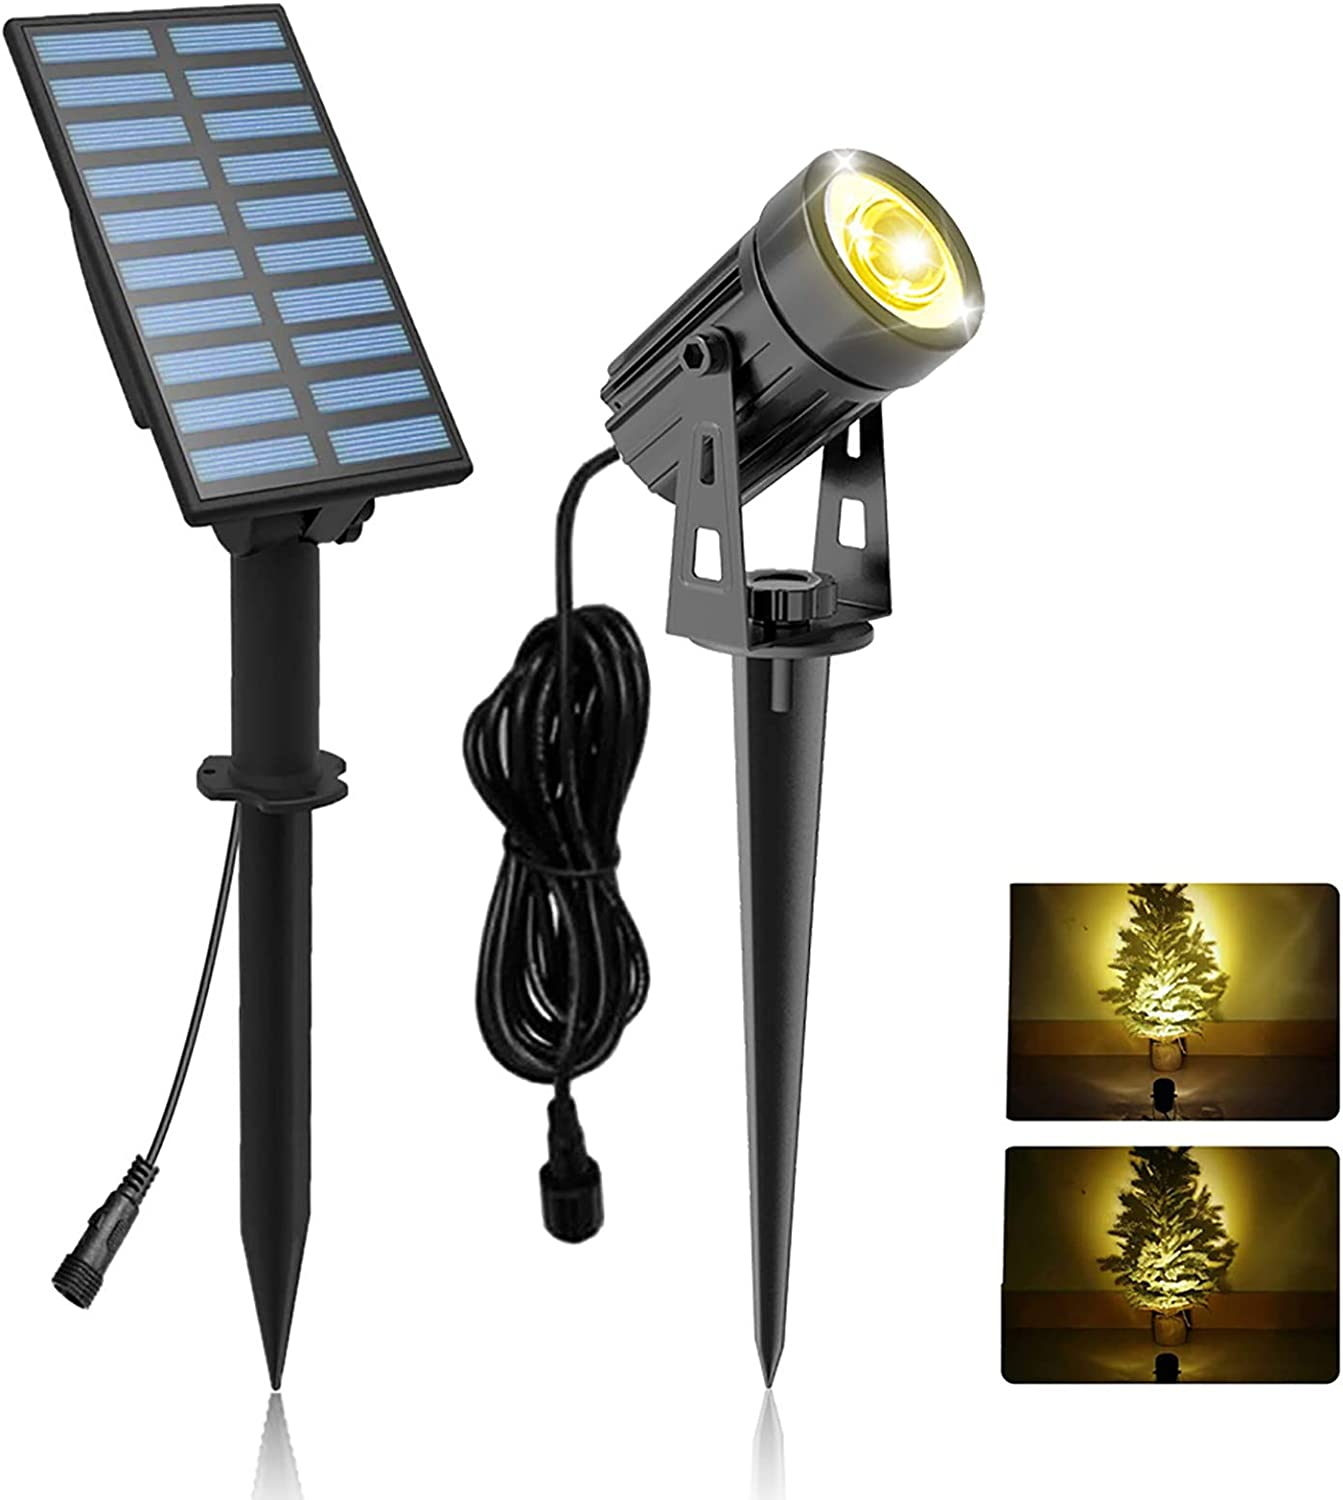 Solar Garden Spot Lights, T-Sunrise LED Solar Light Outdoor Waterproof Auto ON/Off for Garden, Driveway, Pathway, Pool Area(Warm White 3000K)